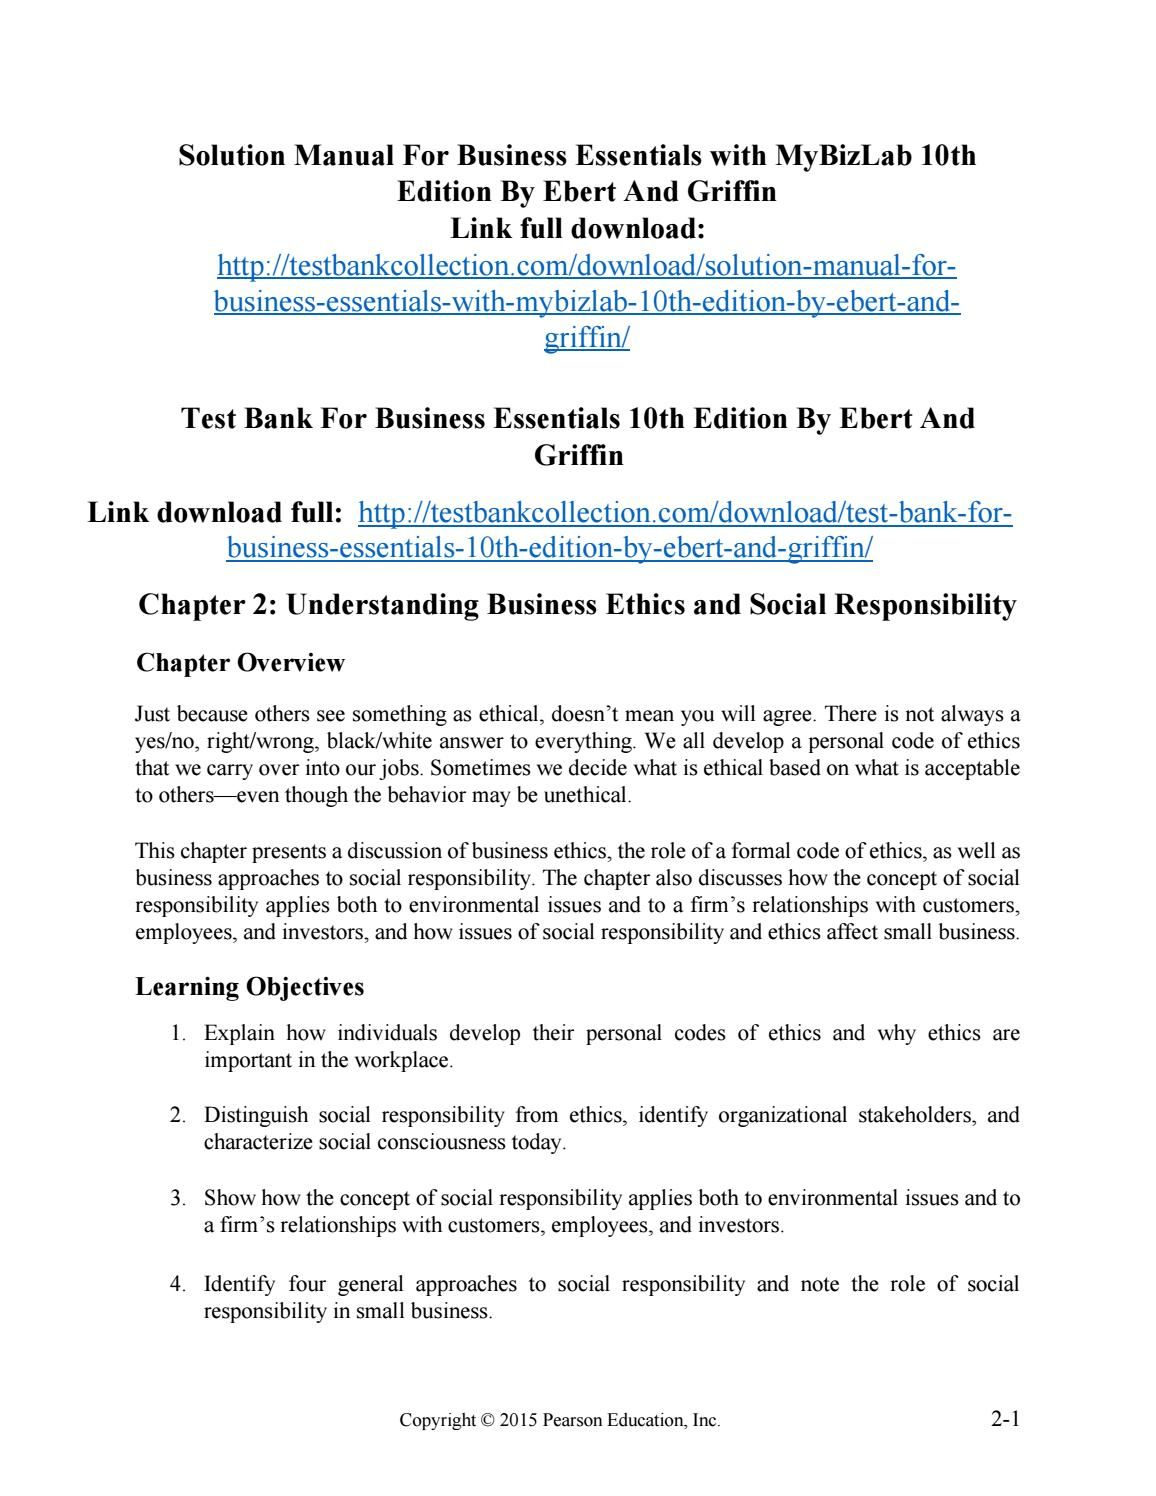 Solution manual for business essentials with mybizlab 10th edition by ebert  and griffin